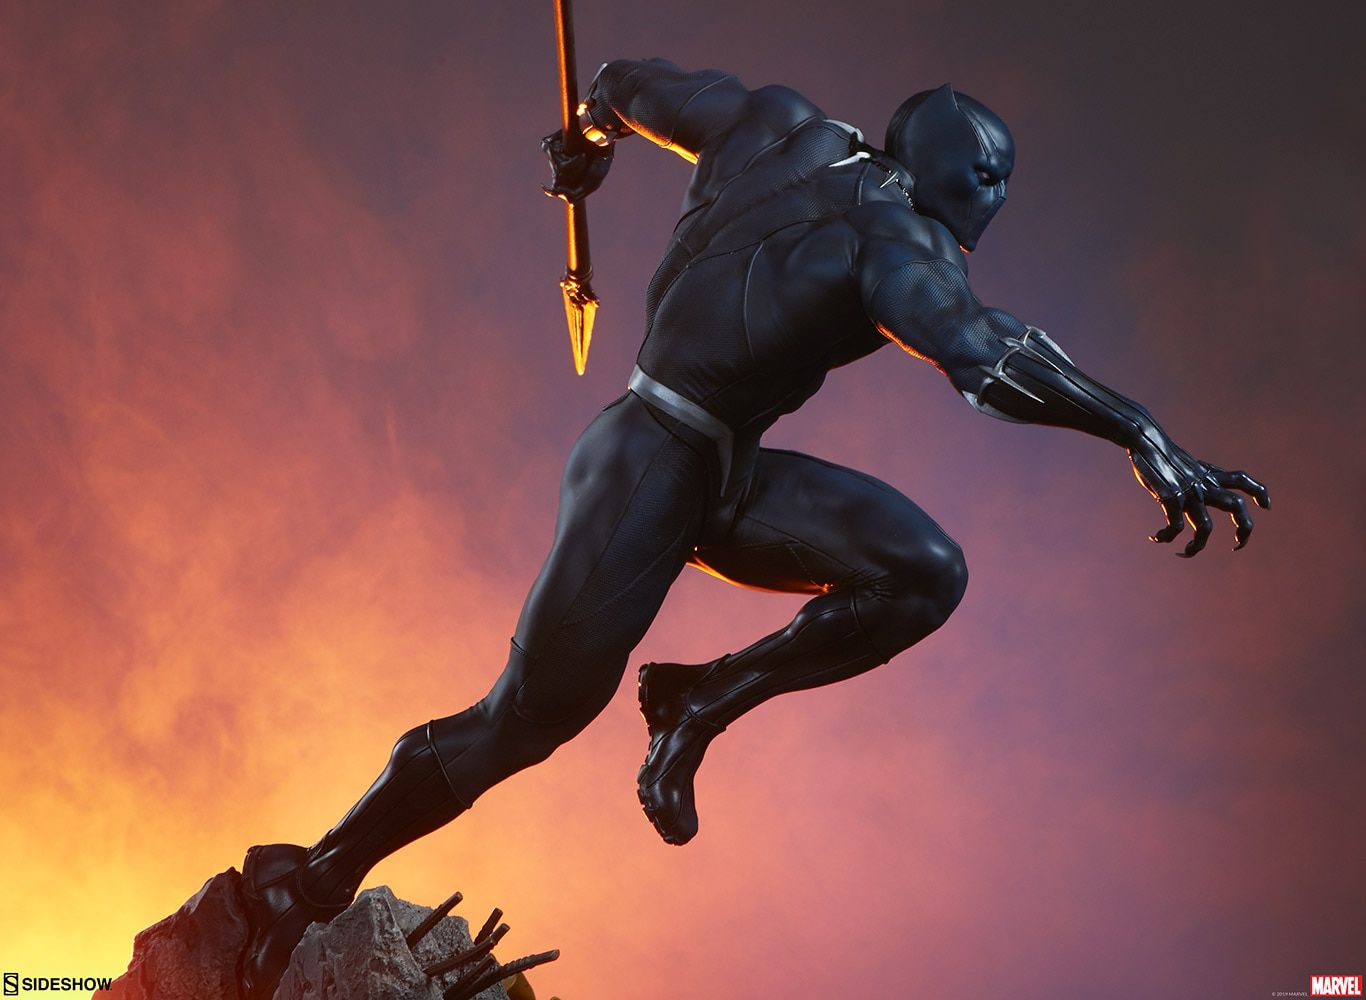 PRÉ VENDA: Estátua Pantera Negra (Black Panther): Marvel Avengers Assemble Collection - Sideshow